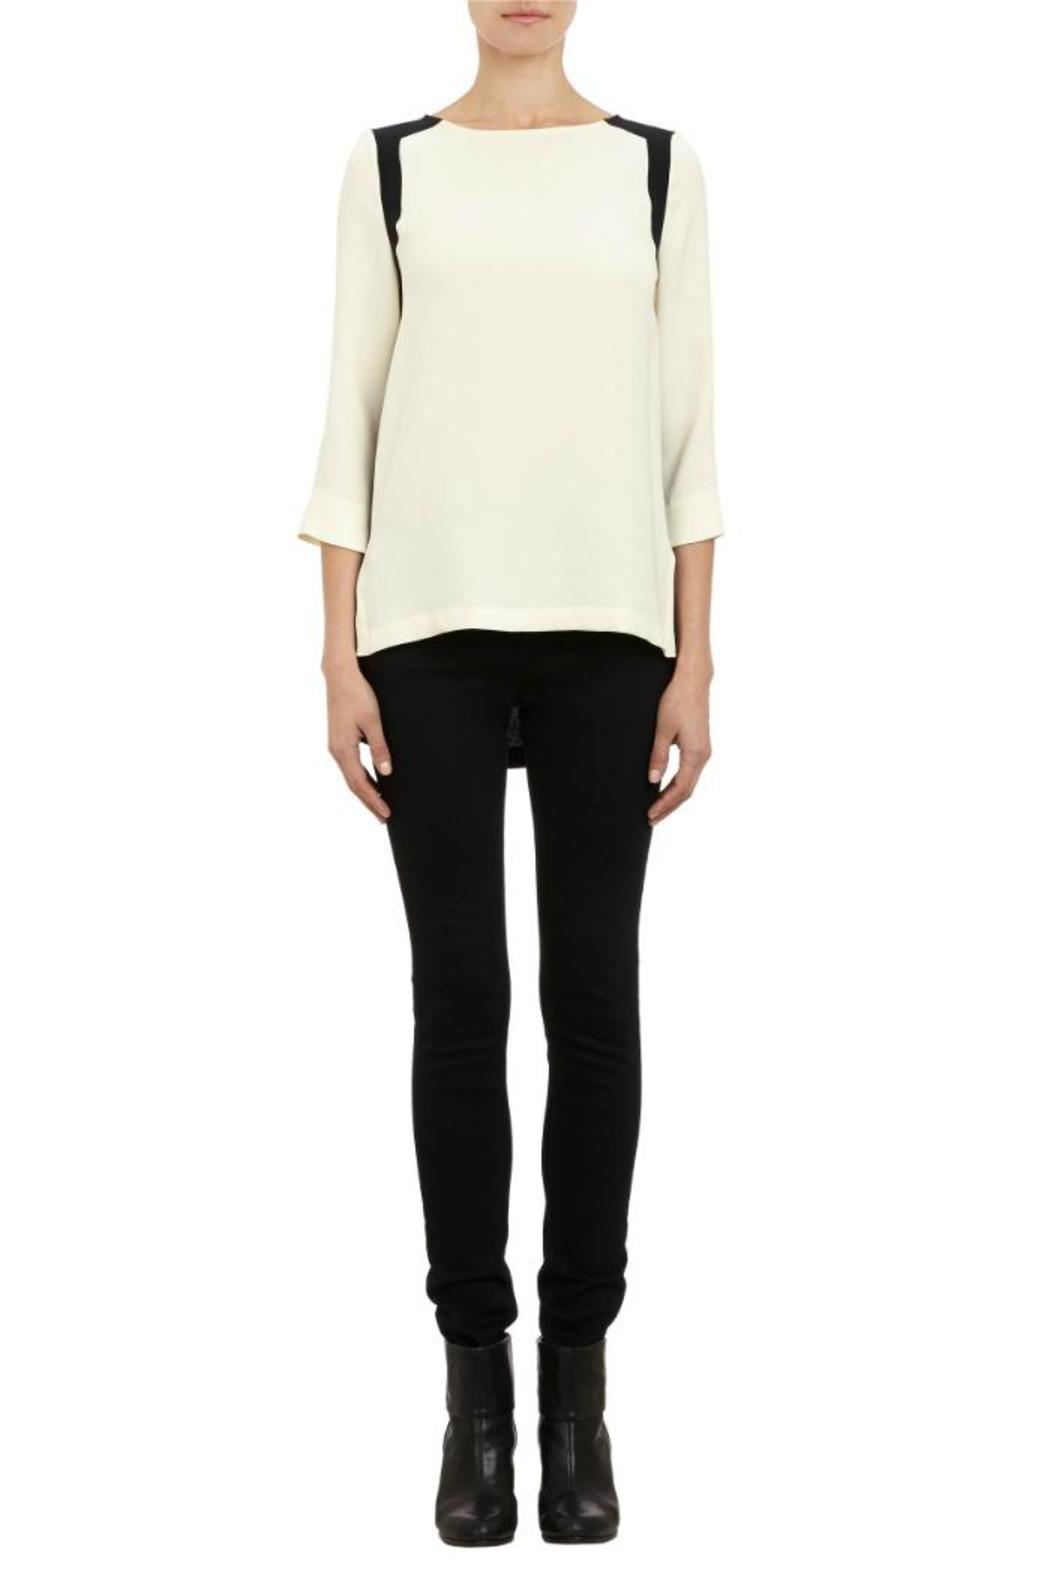 1b972fa5c6a1 Rag   Bone Jade Colour-Block Blouse from Canada by Era Style Loft ...